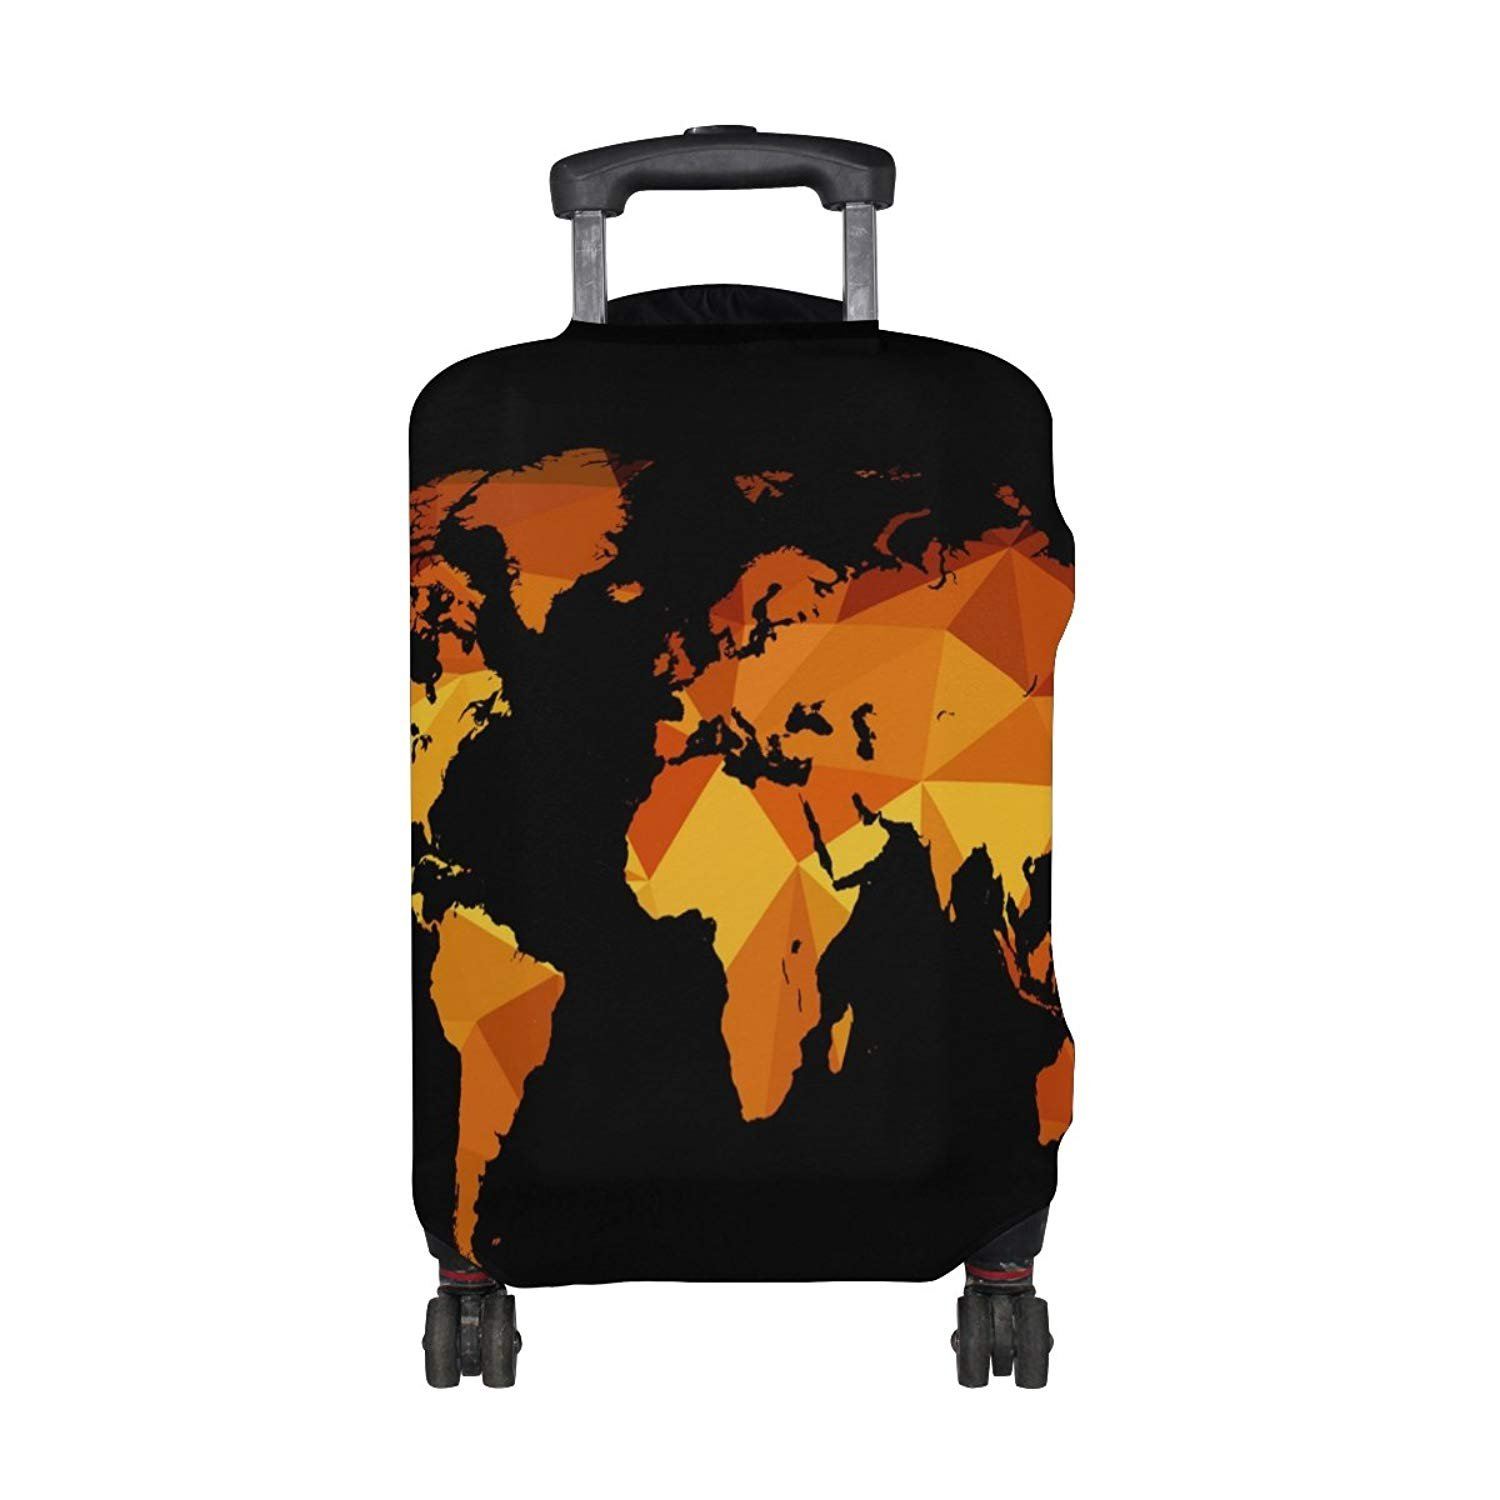 Weed Leaves Travel Luggage Cover Suitcase Protector Washable Zipper Baggage Cover